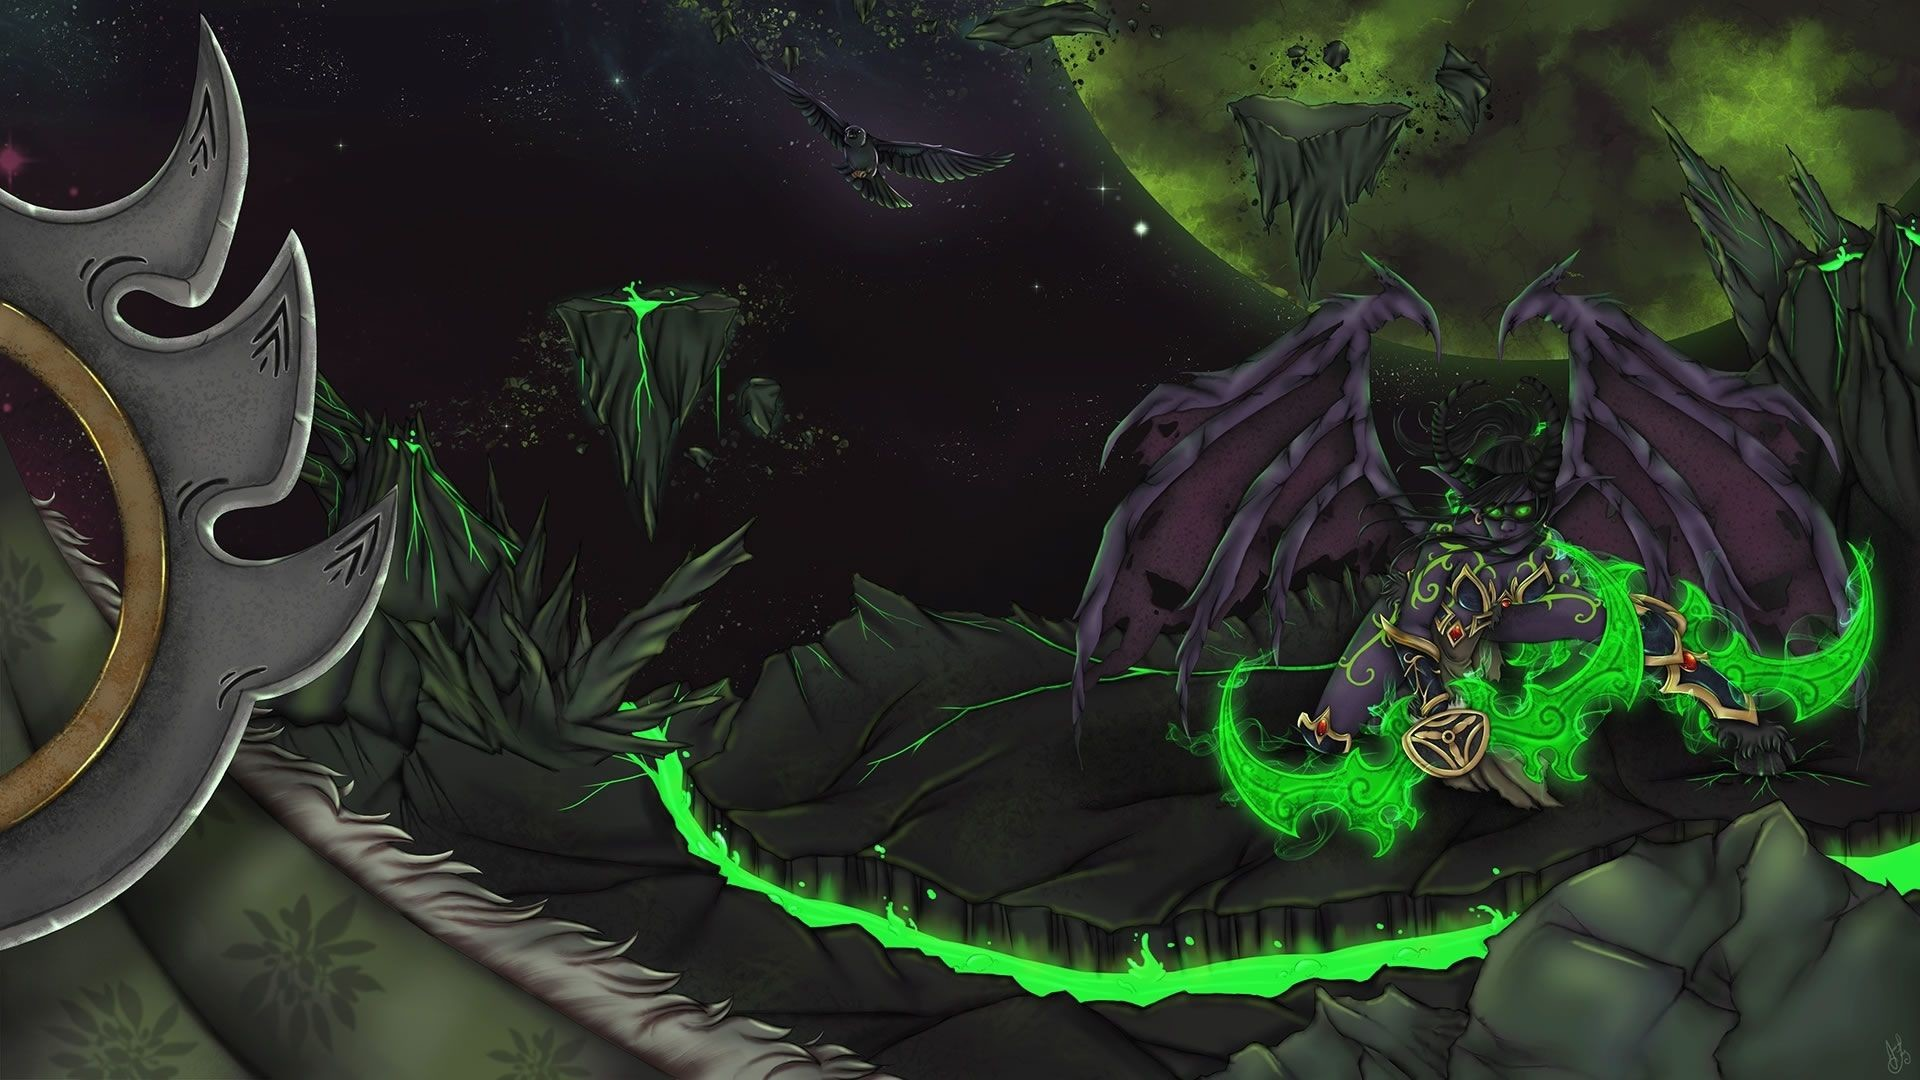 1920x1080 Best of Wow Legion Desktop Wallpaper Animated Free - WoW Legion Animated Background Download link in